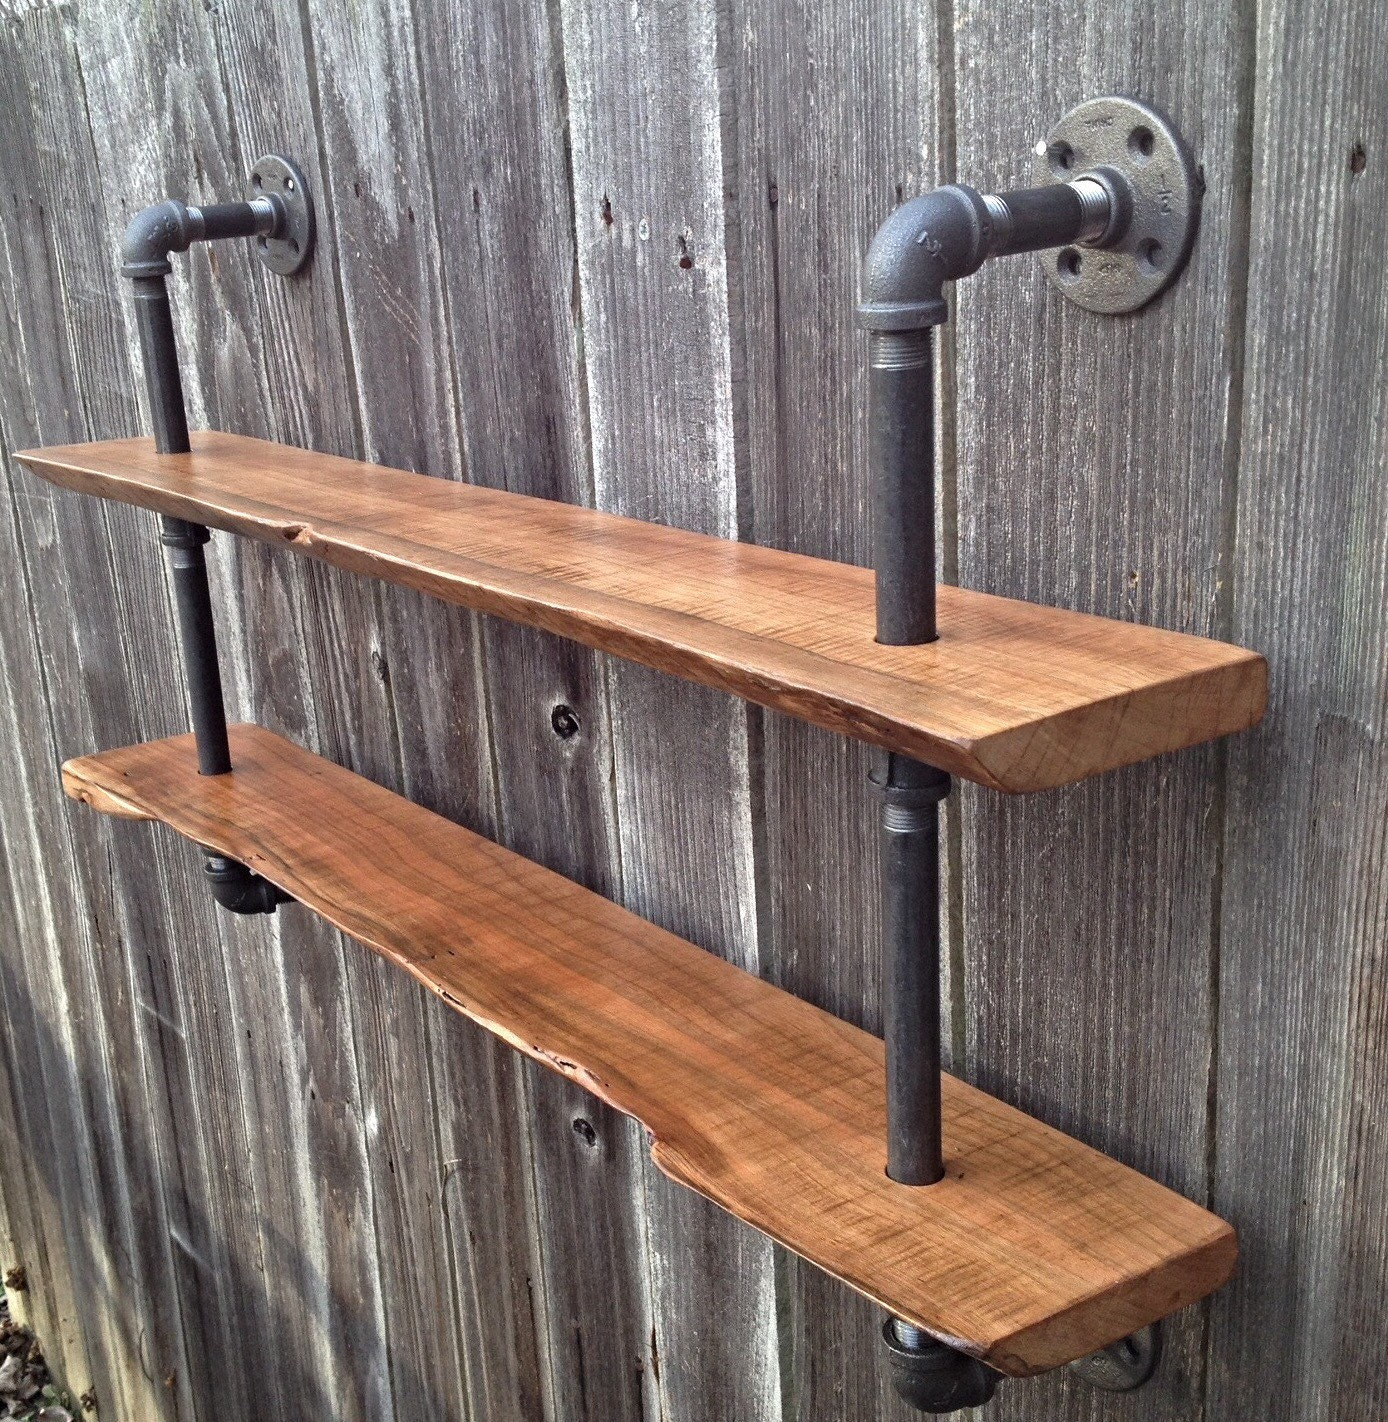 Living Edge Double Bookshelf Reclaimed Wood Industrial